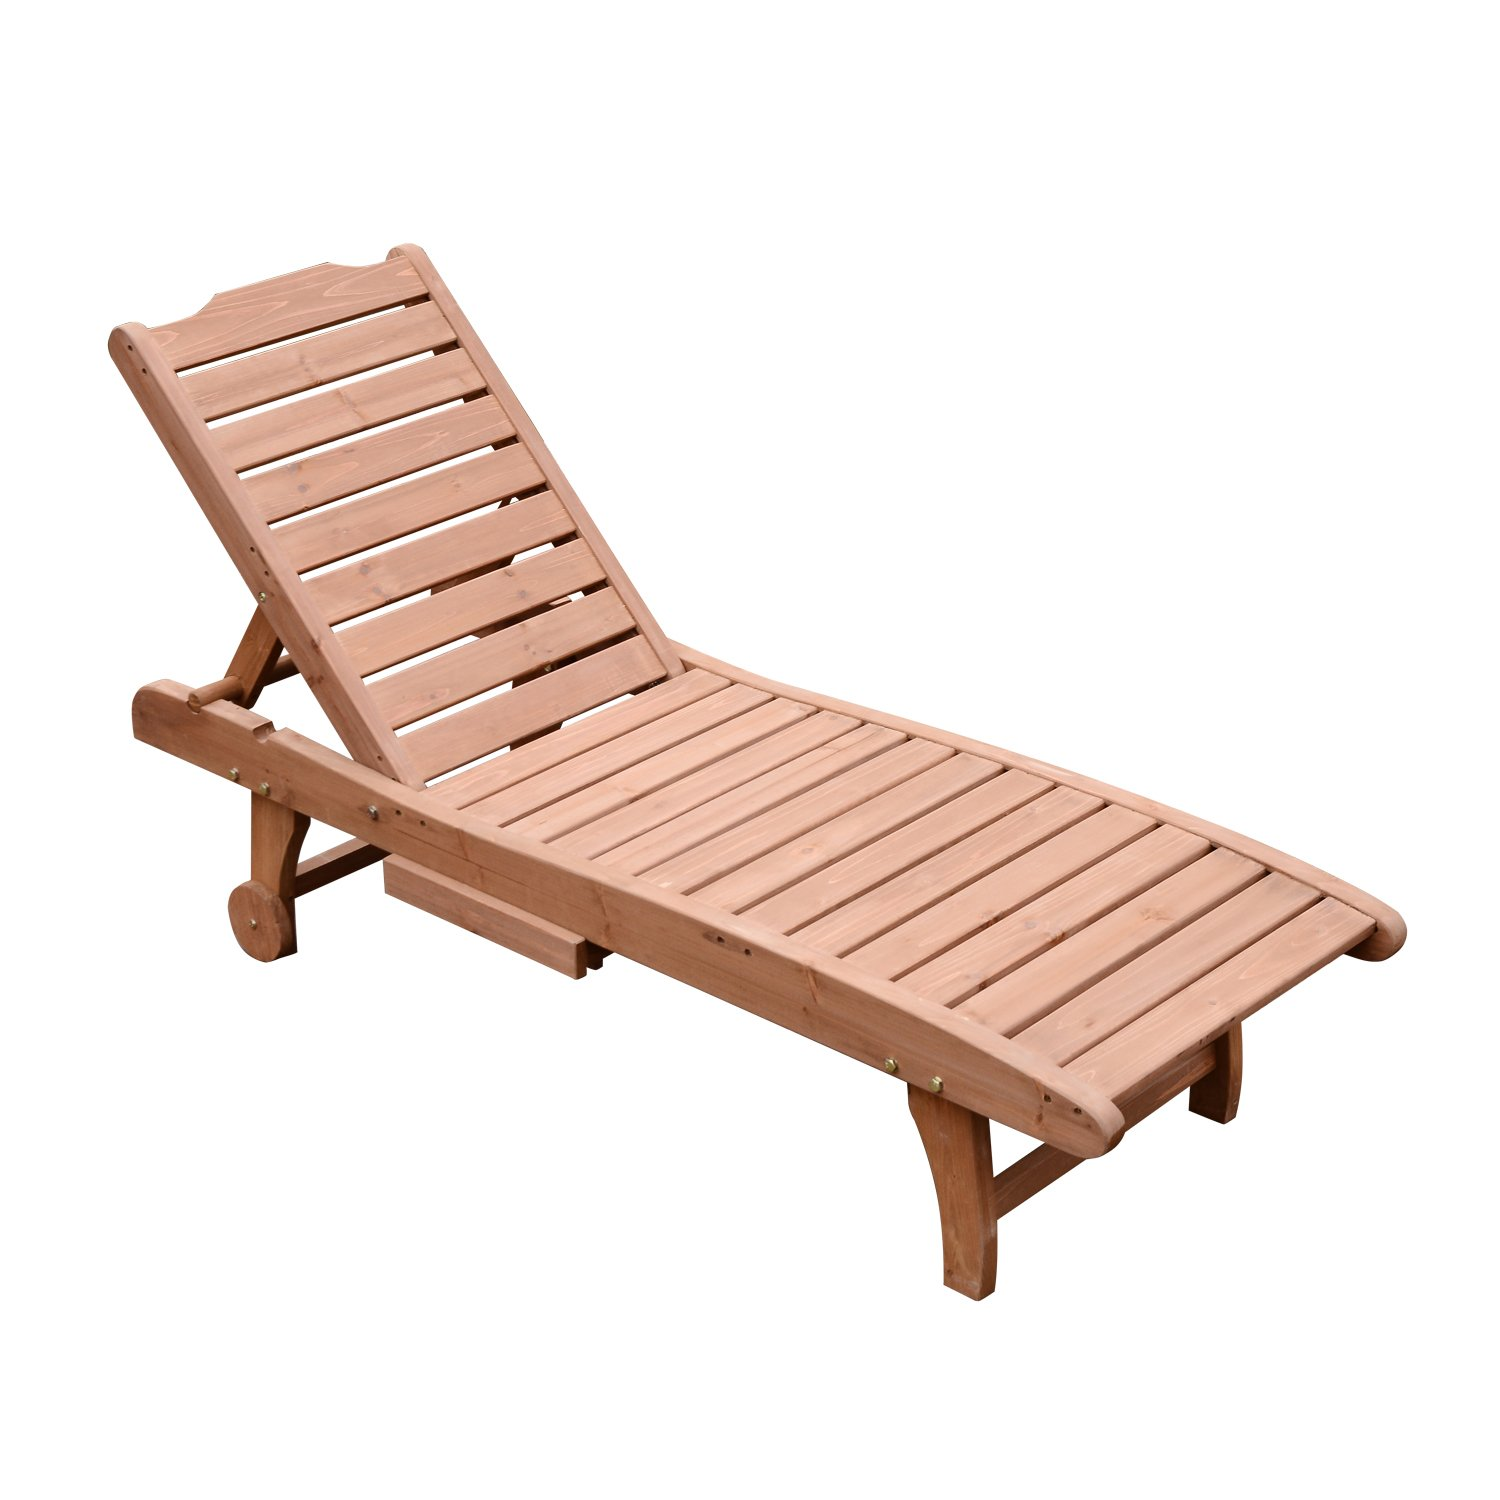 Amazoncom Outsunny Reclining Outdoor Wooden Chaise Lounge Patio